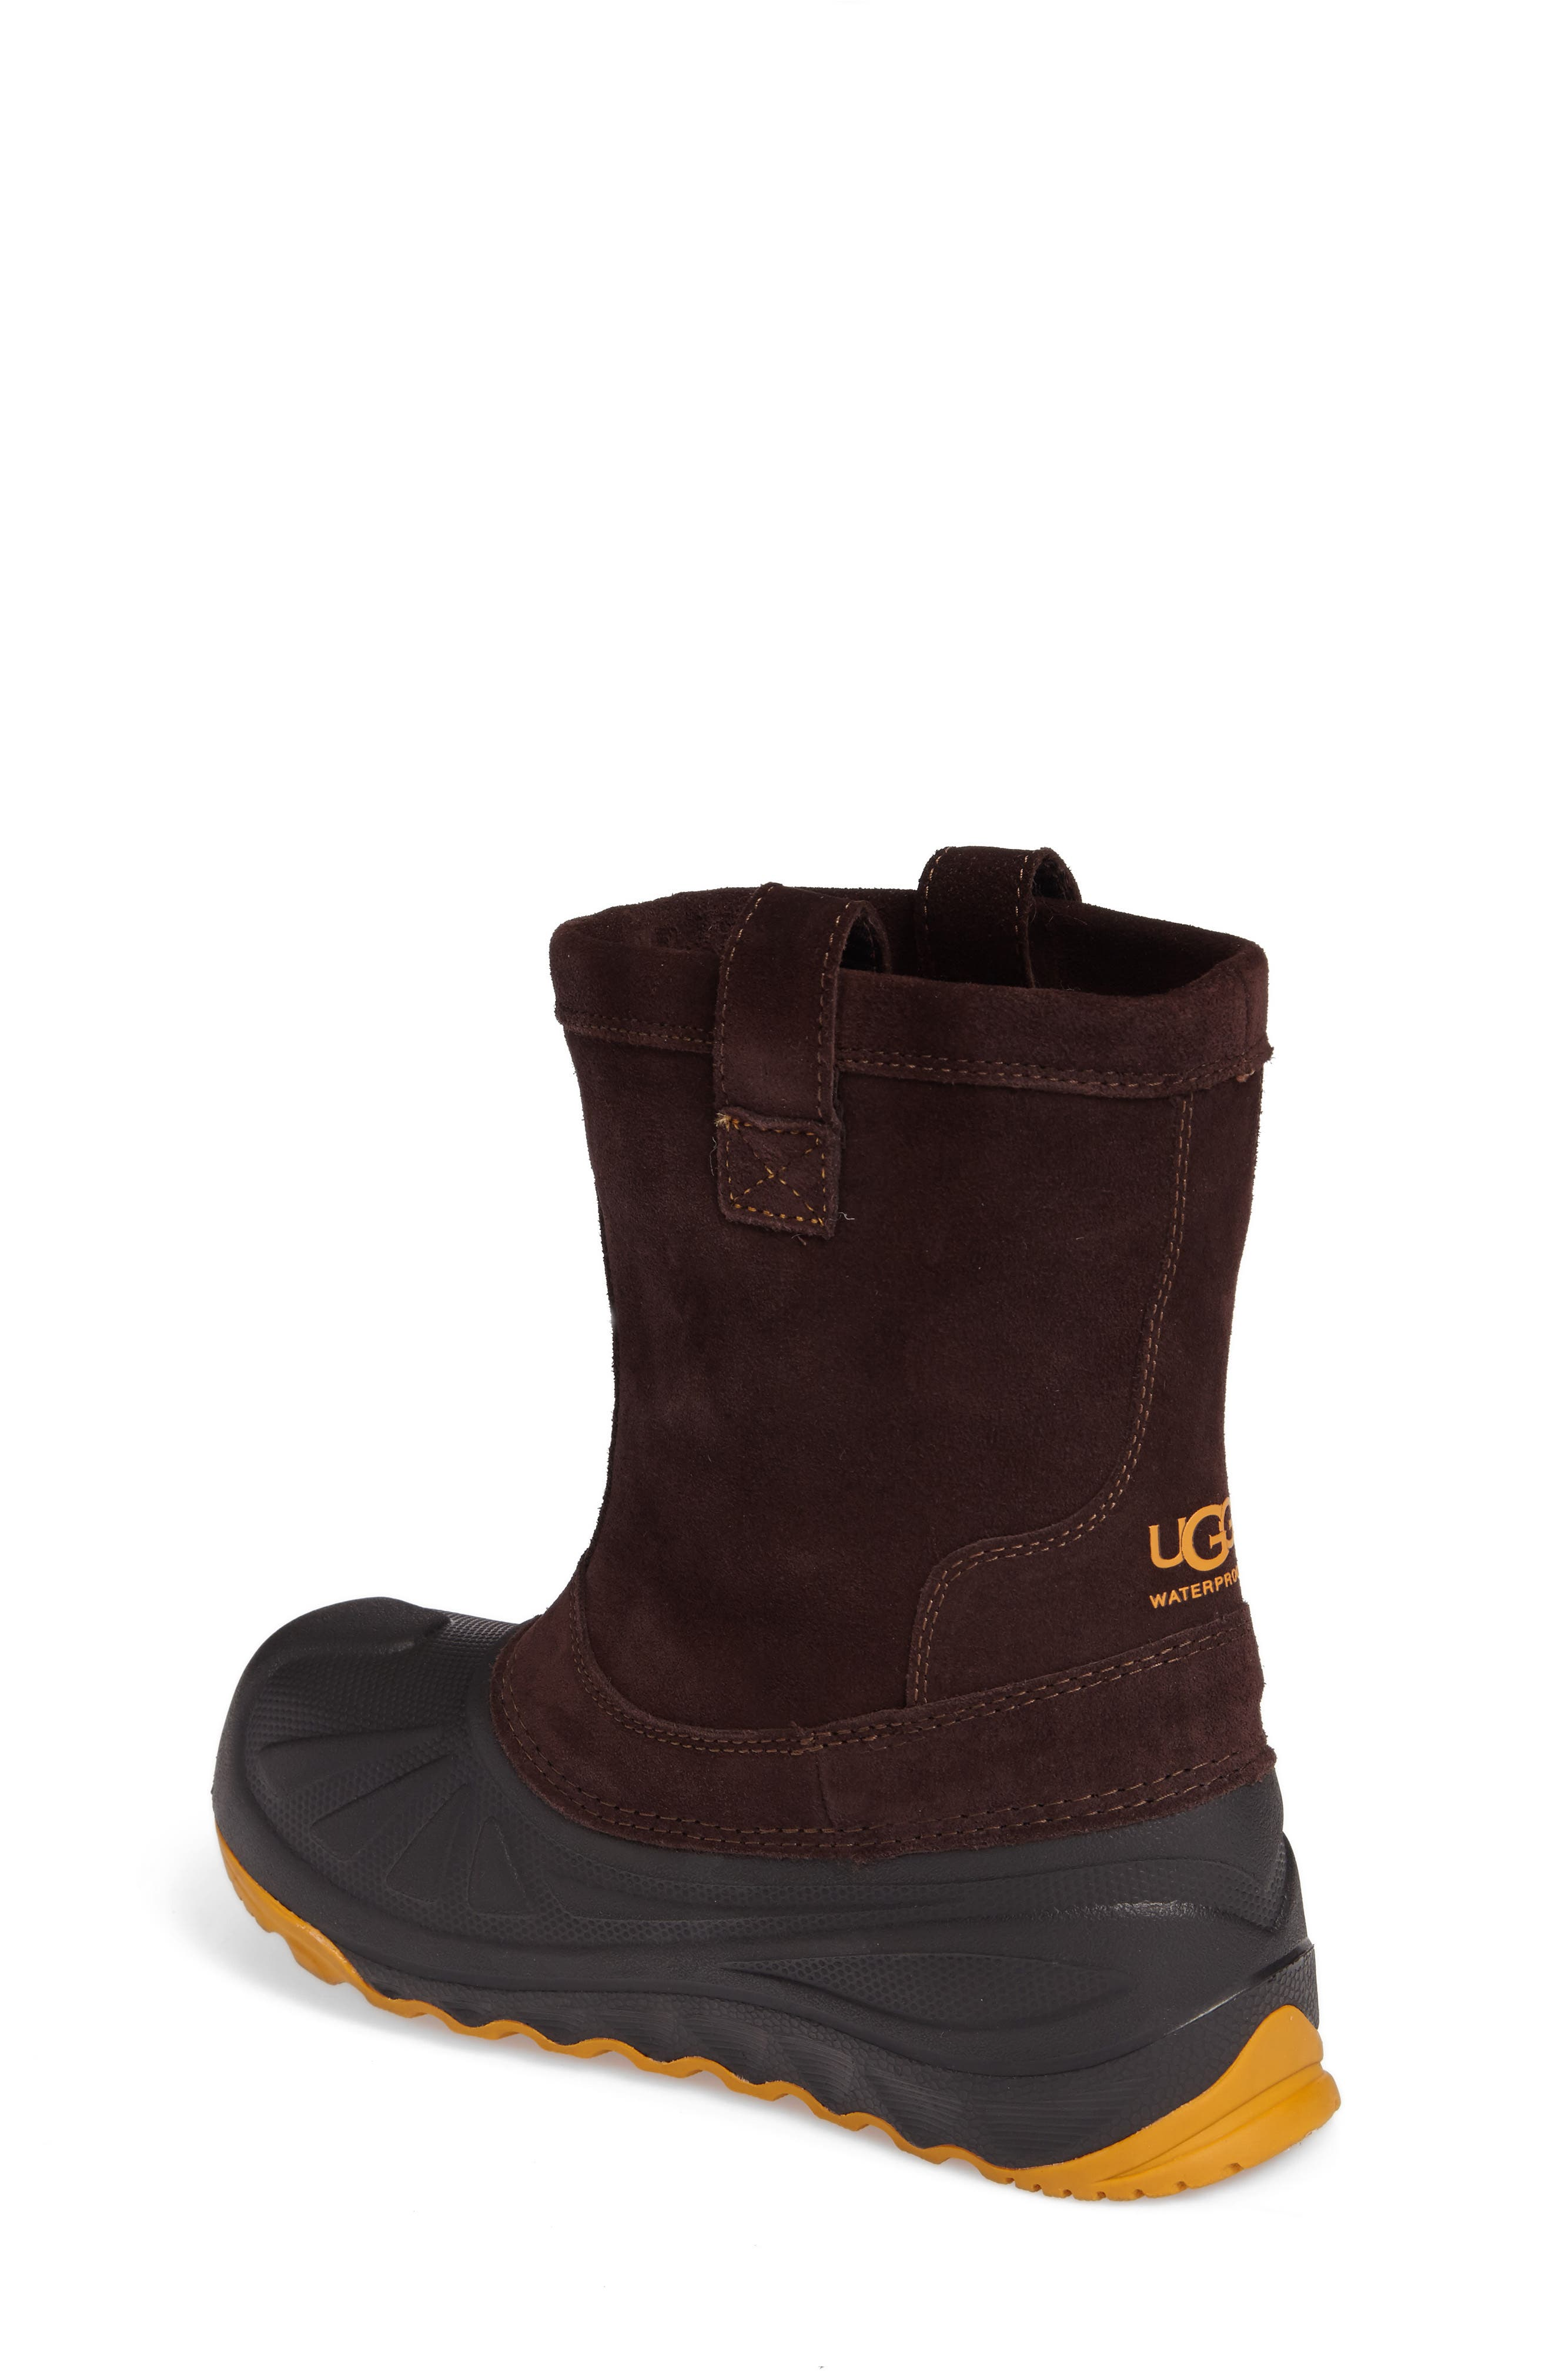 Alternate Image 2  - UGG® Evertt Waterproof Thinsulate™ Insulated Snow Boot (Toddler, Little Kid & Big Kid)